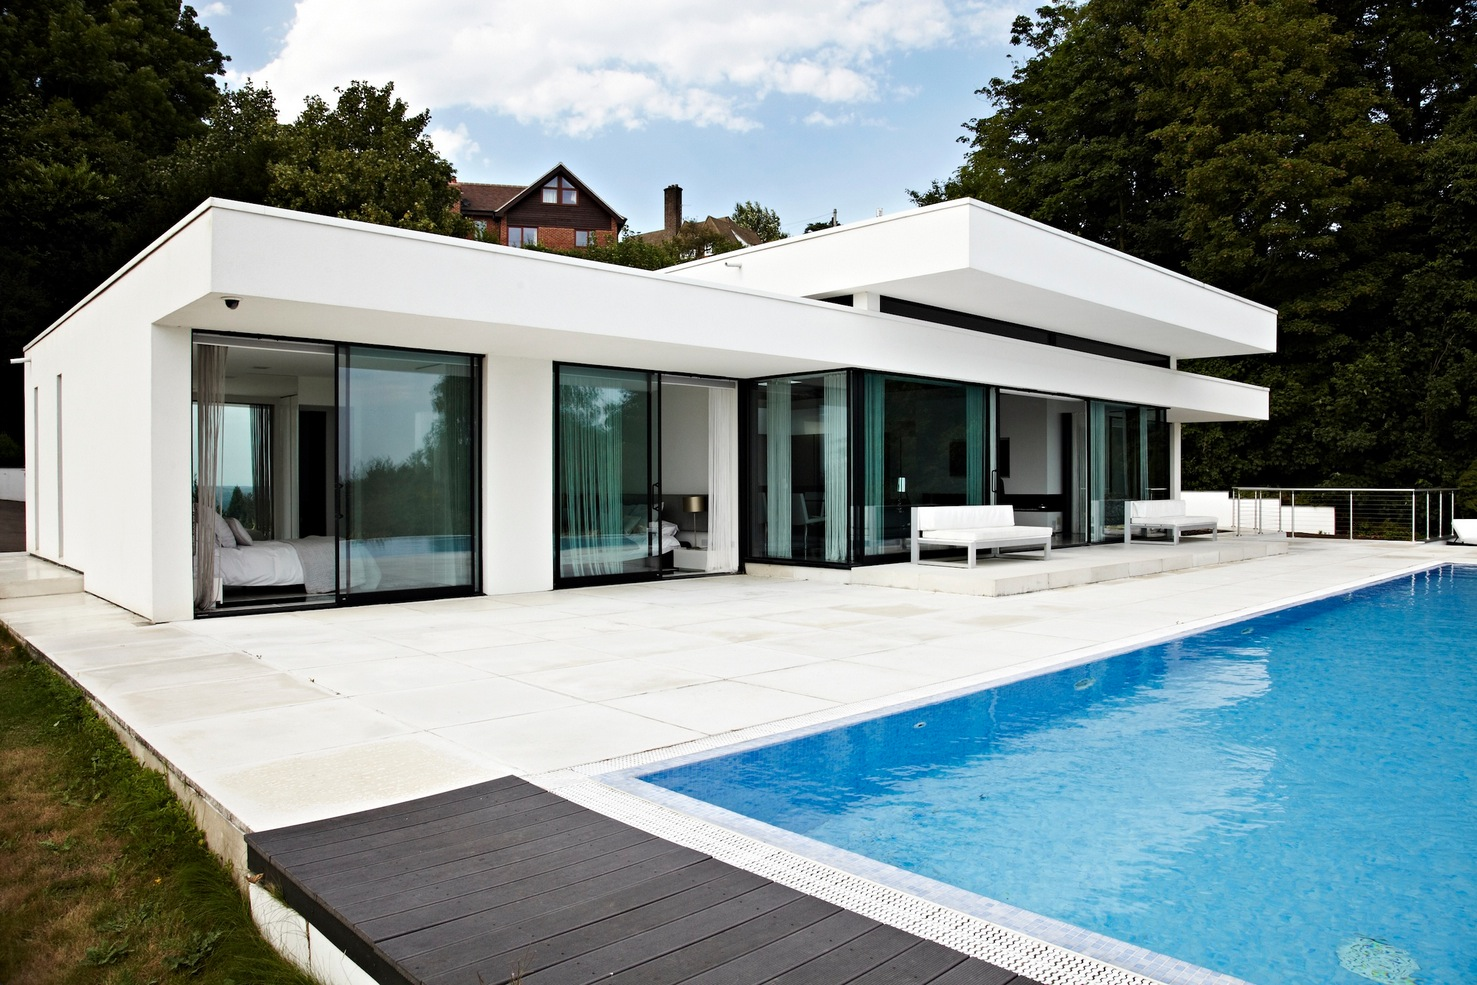 glass walls rear of home | Interior Design Ideas. on Modern Glass House Design  id=48583